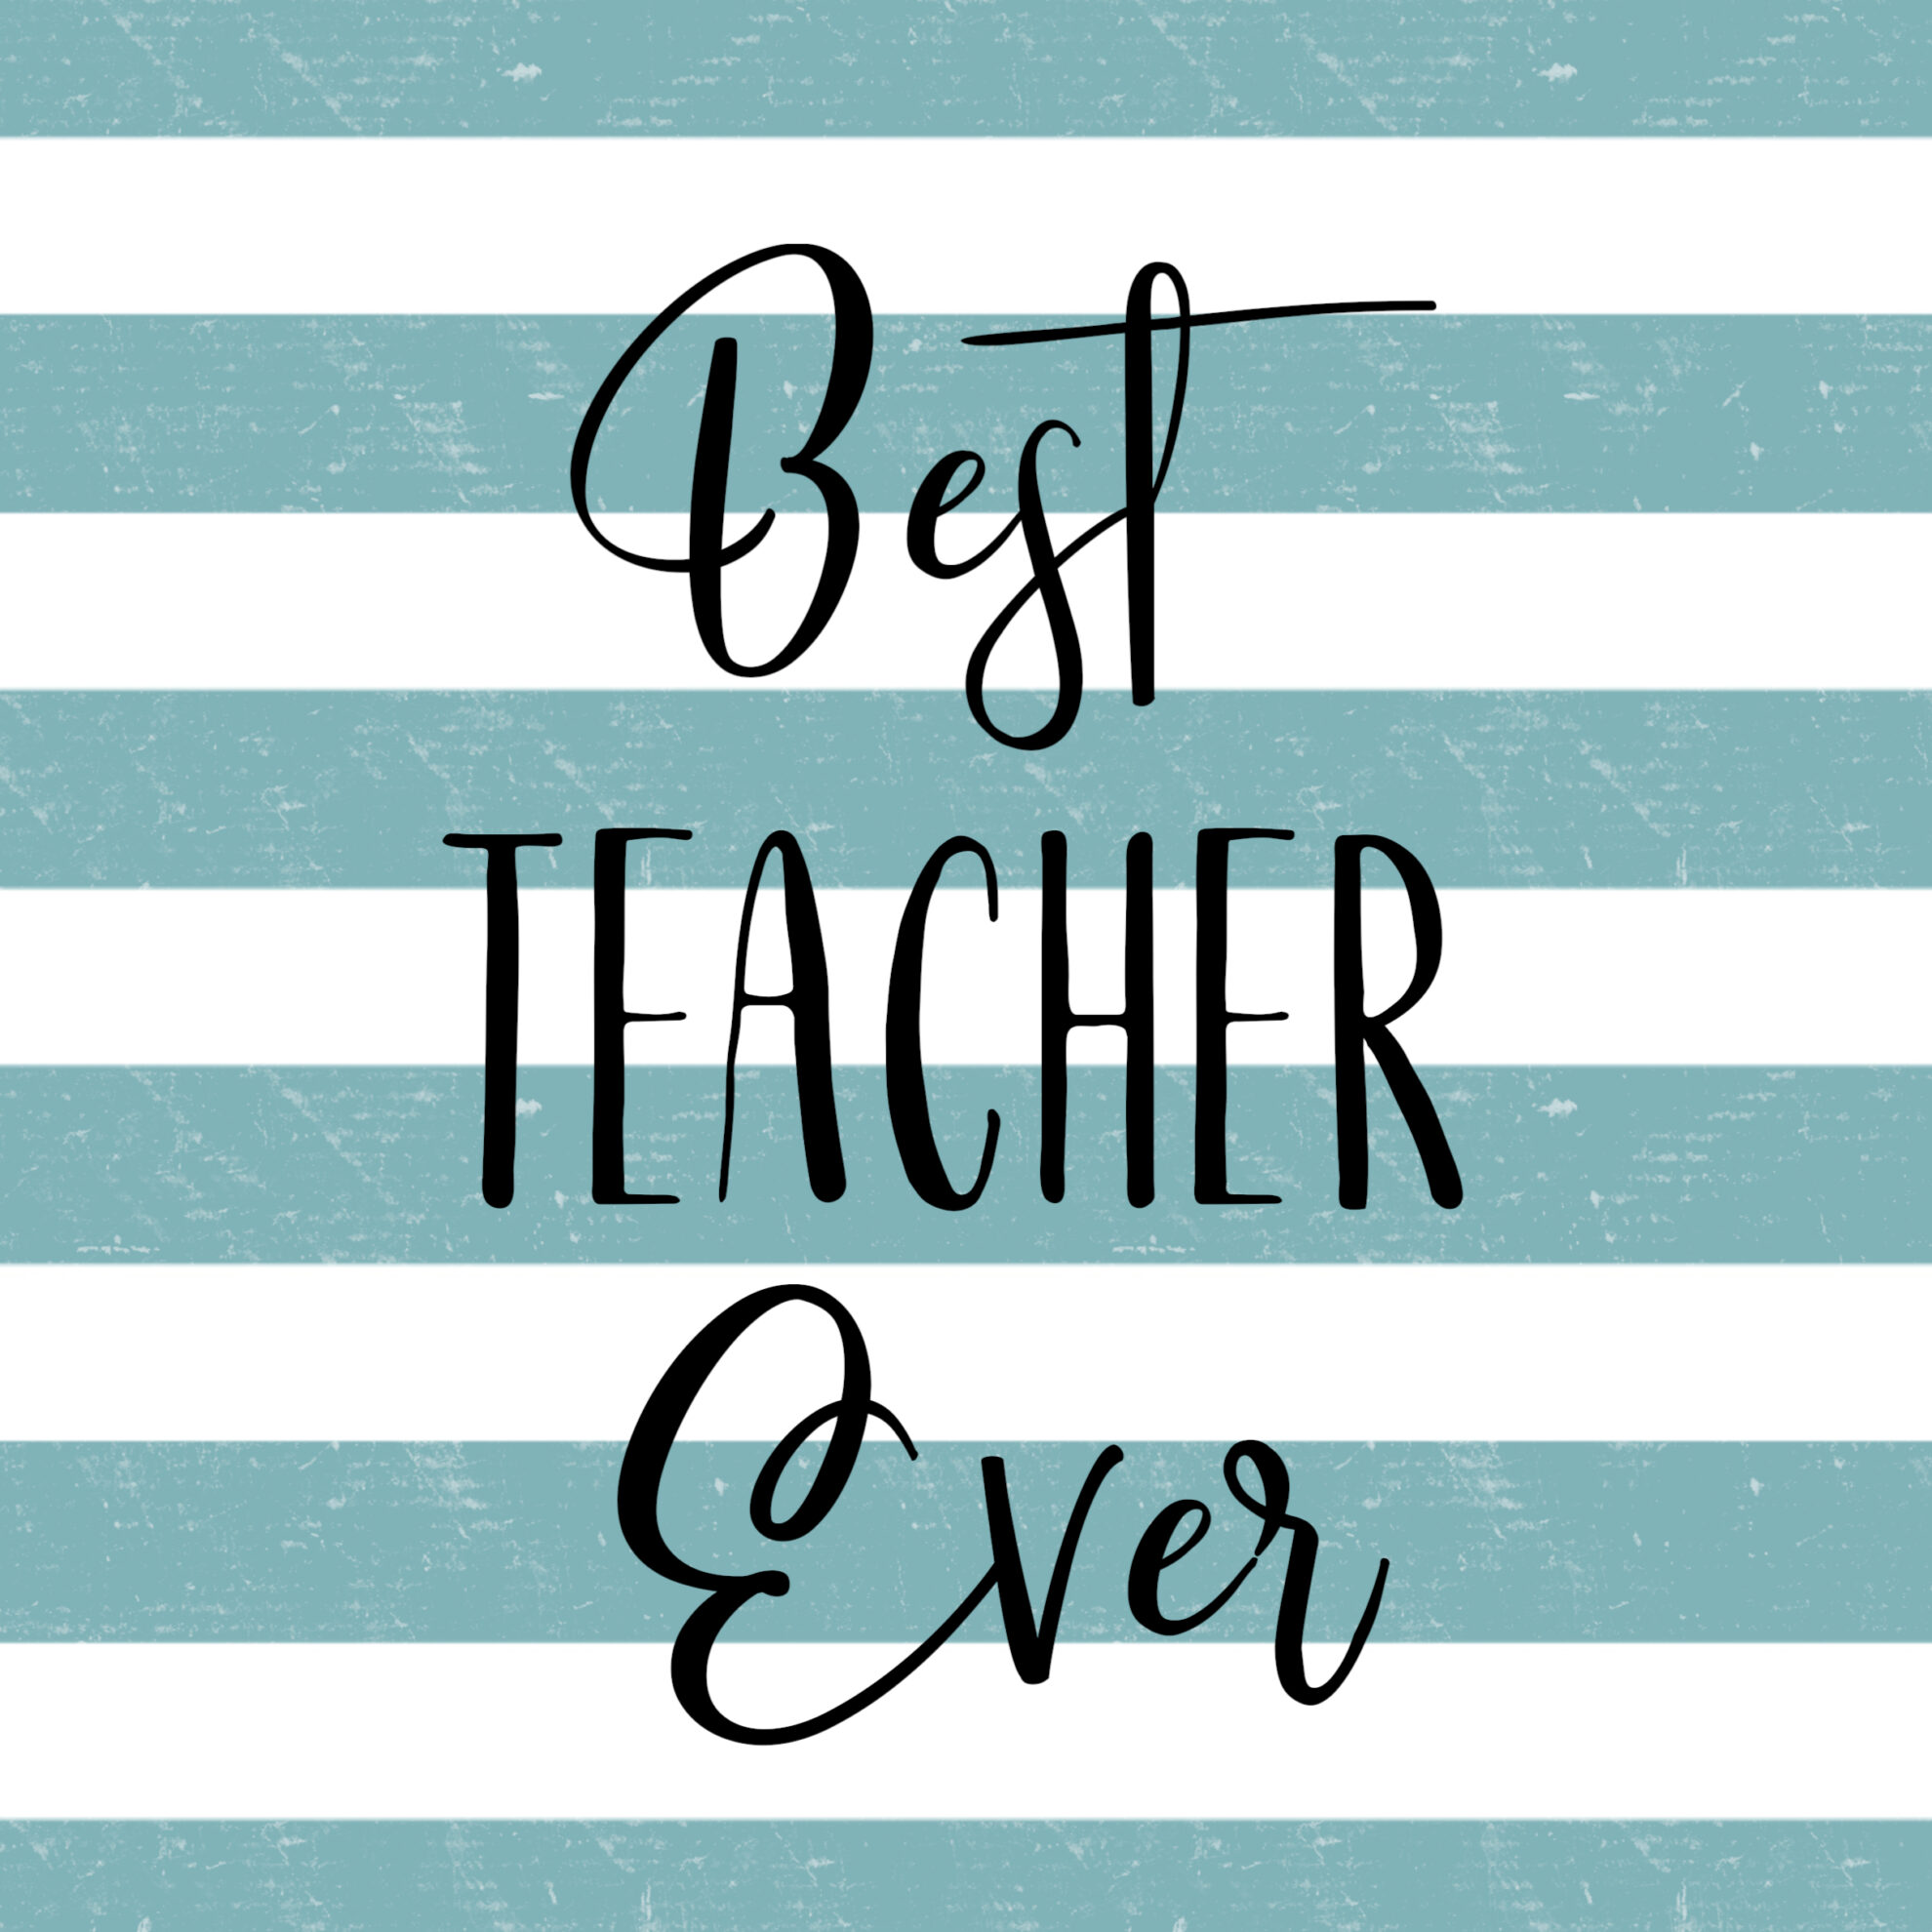 best teacher ever card free printables paper trail design